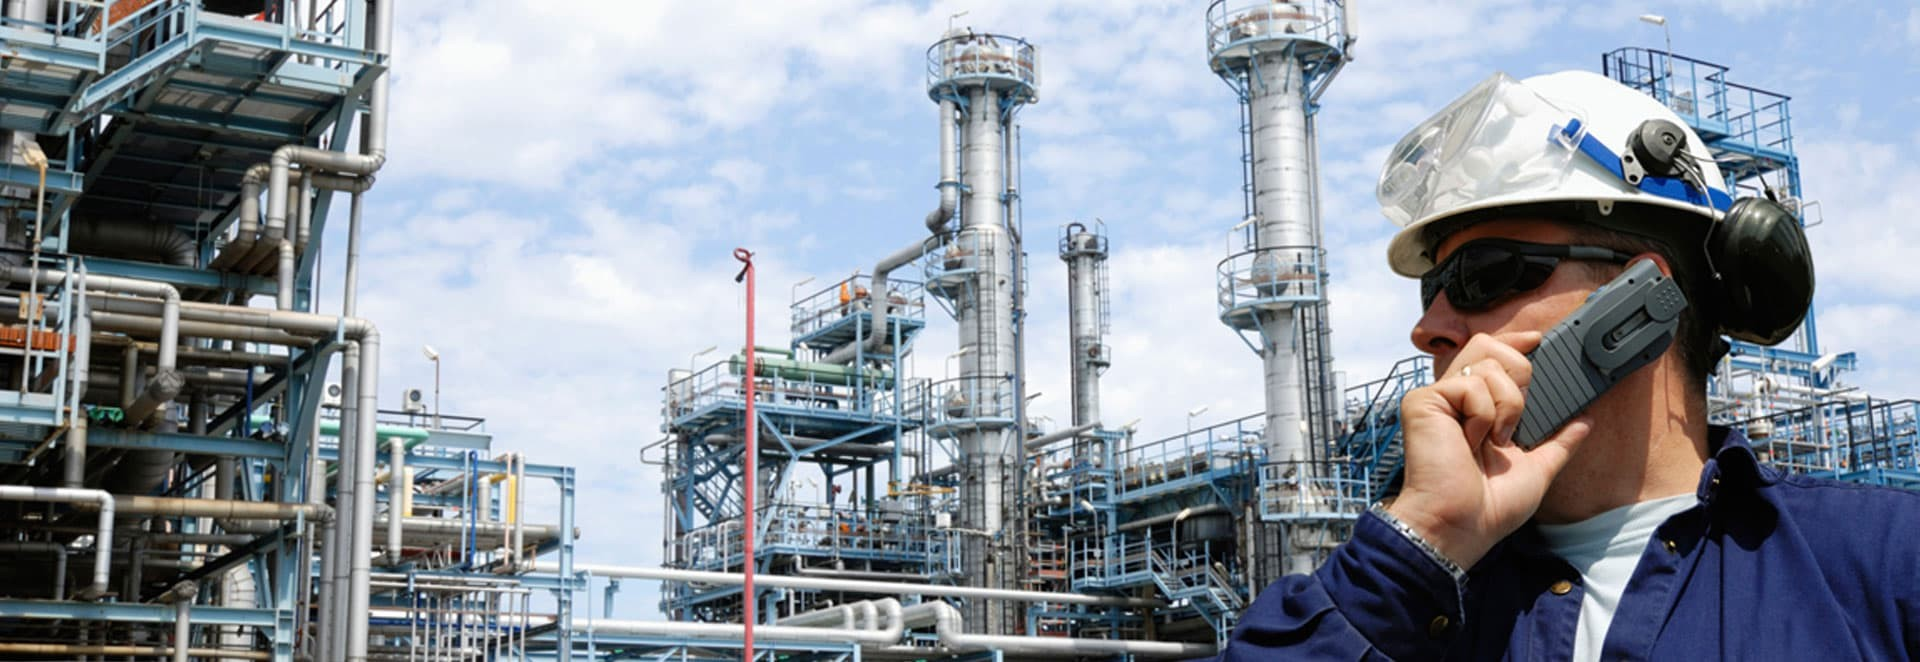 Petrochemical and Refining Industry